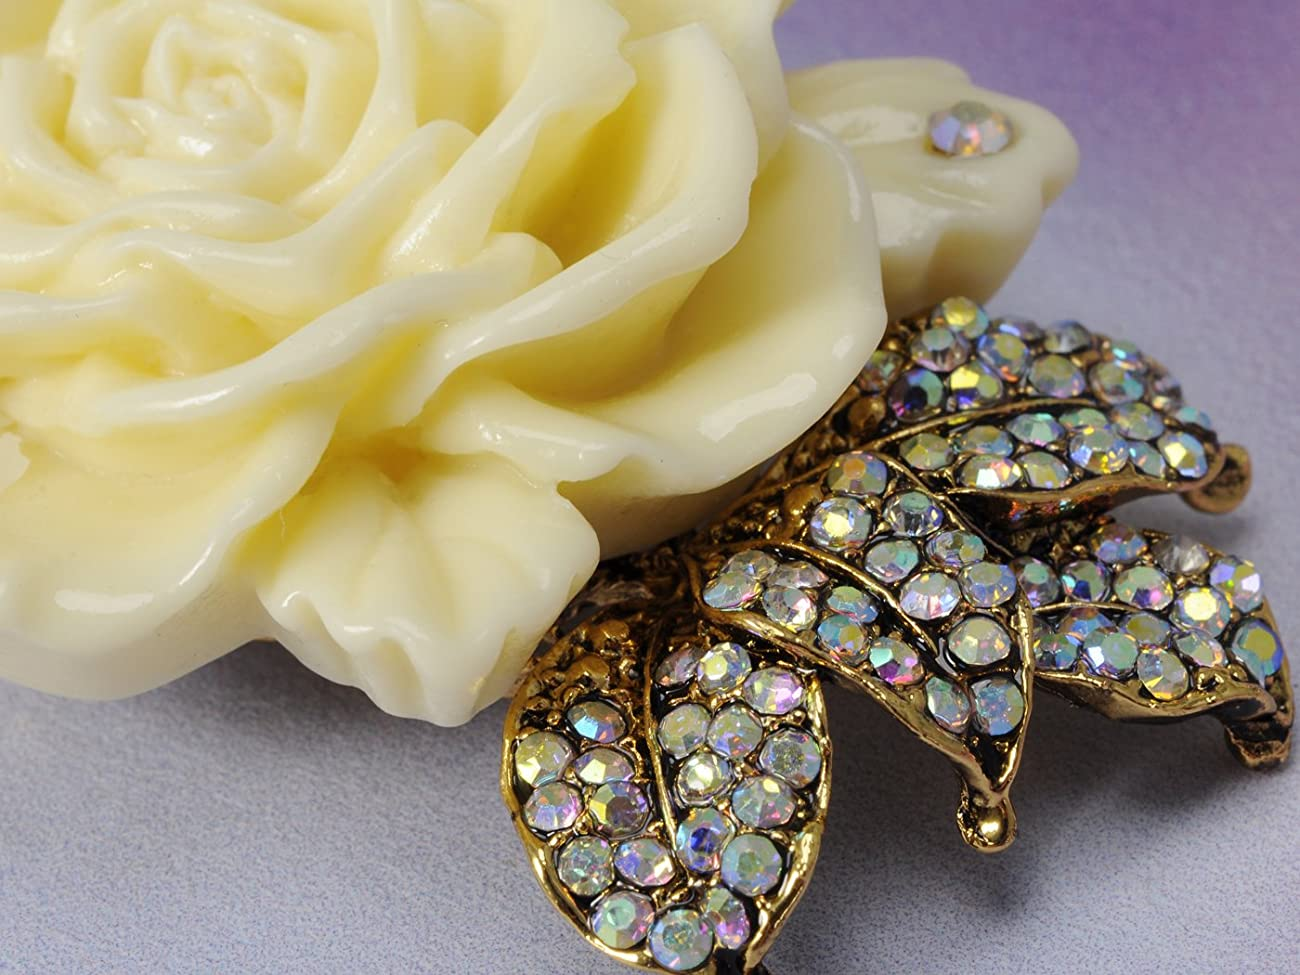 Vintage Inspired Tone Elegant Cream White Resin Enamel Rose Crystal Rhinestone Fashion Jewelry 3